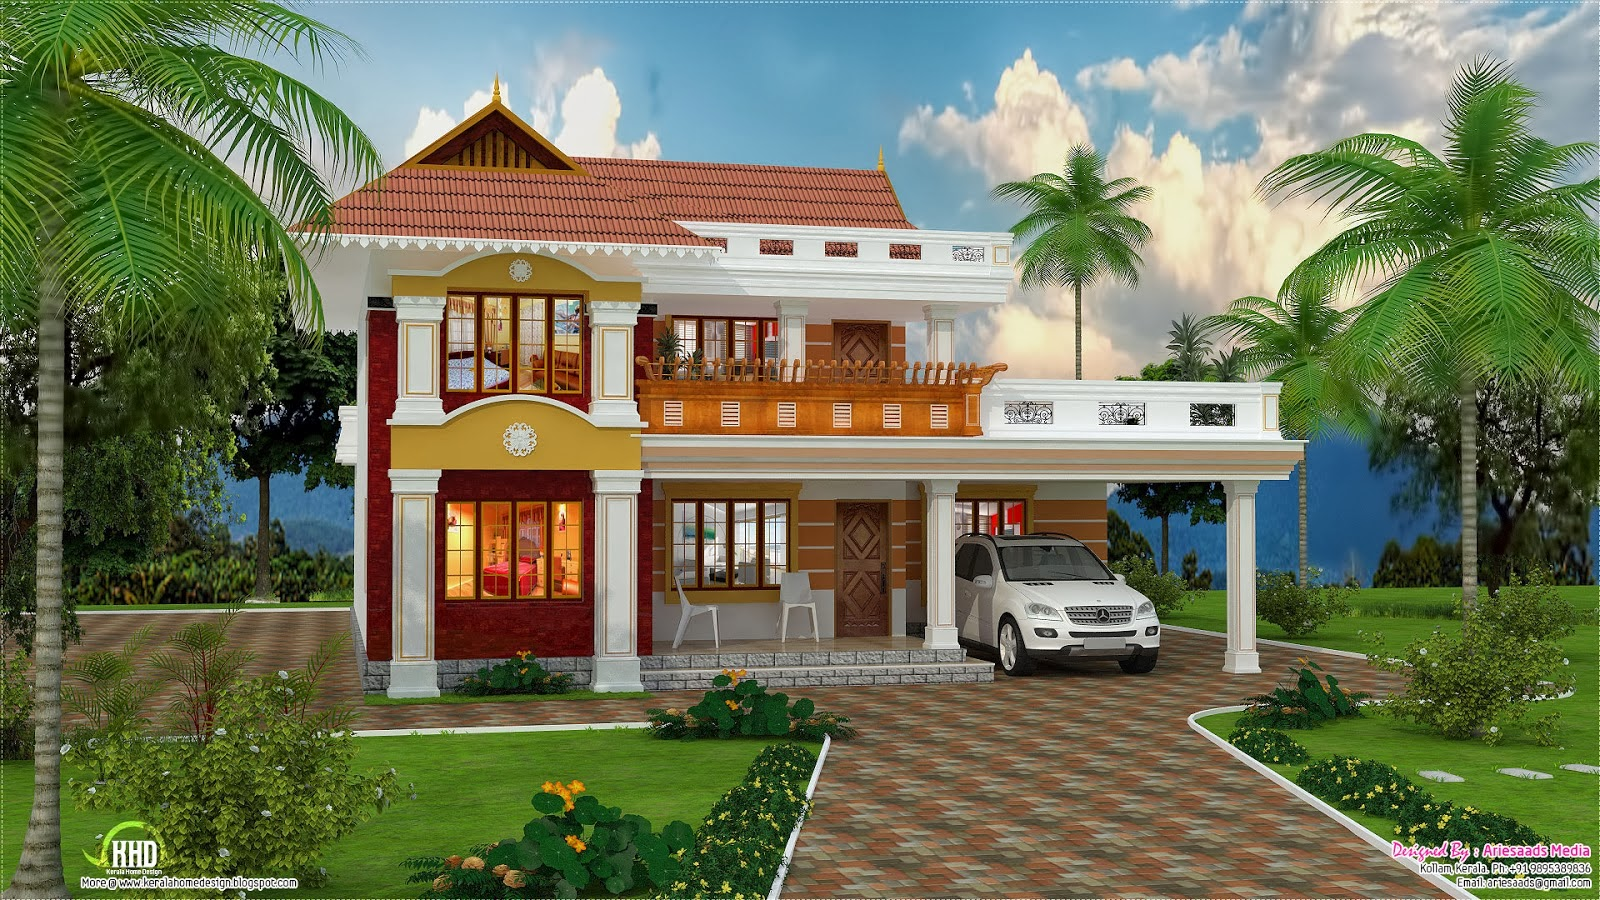 Beautiful house hd wallpaper beautiful desktop for Home wallpaper chennai